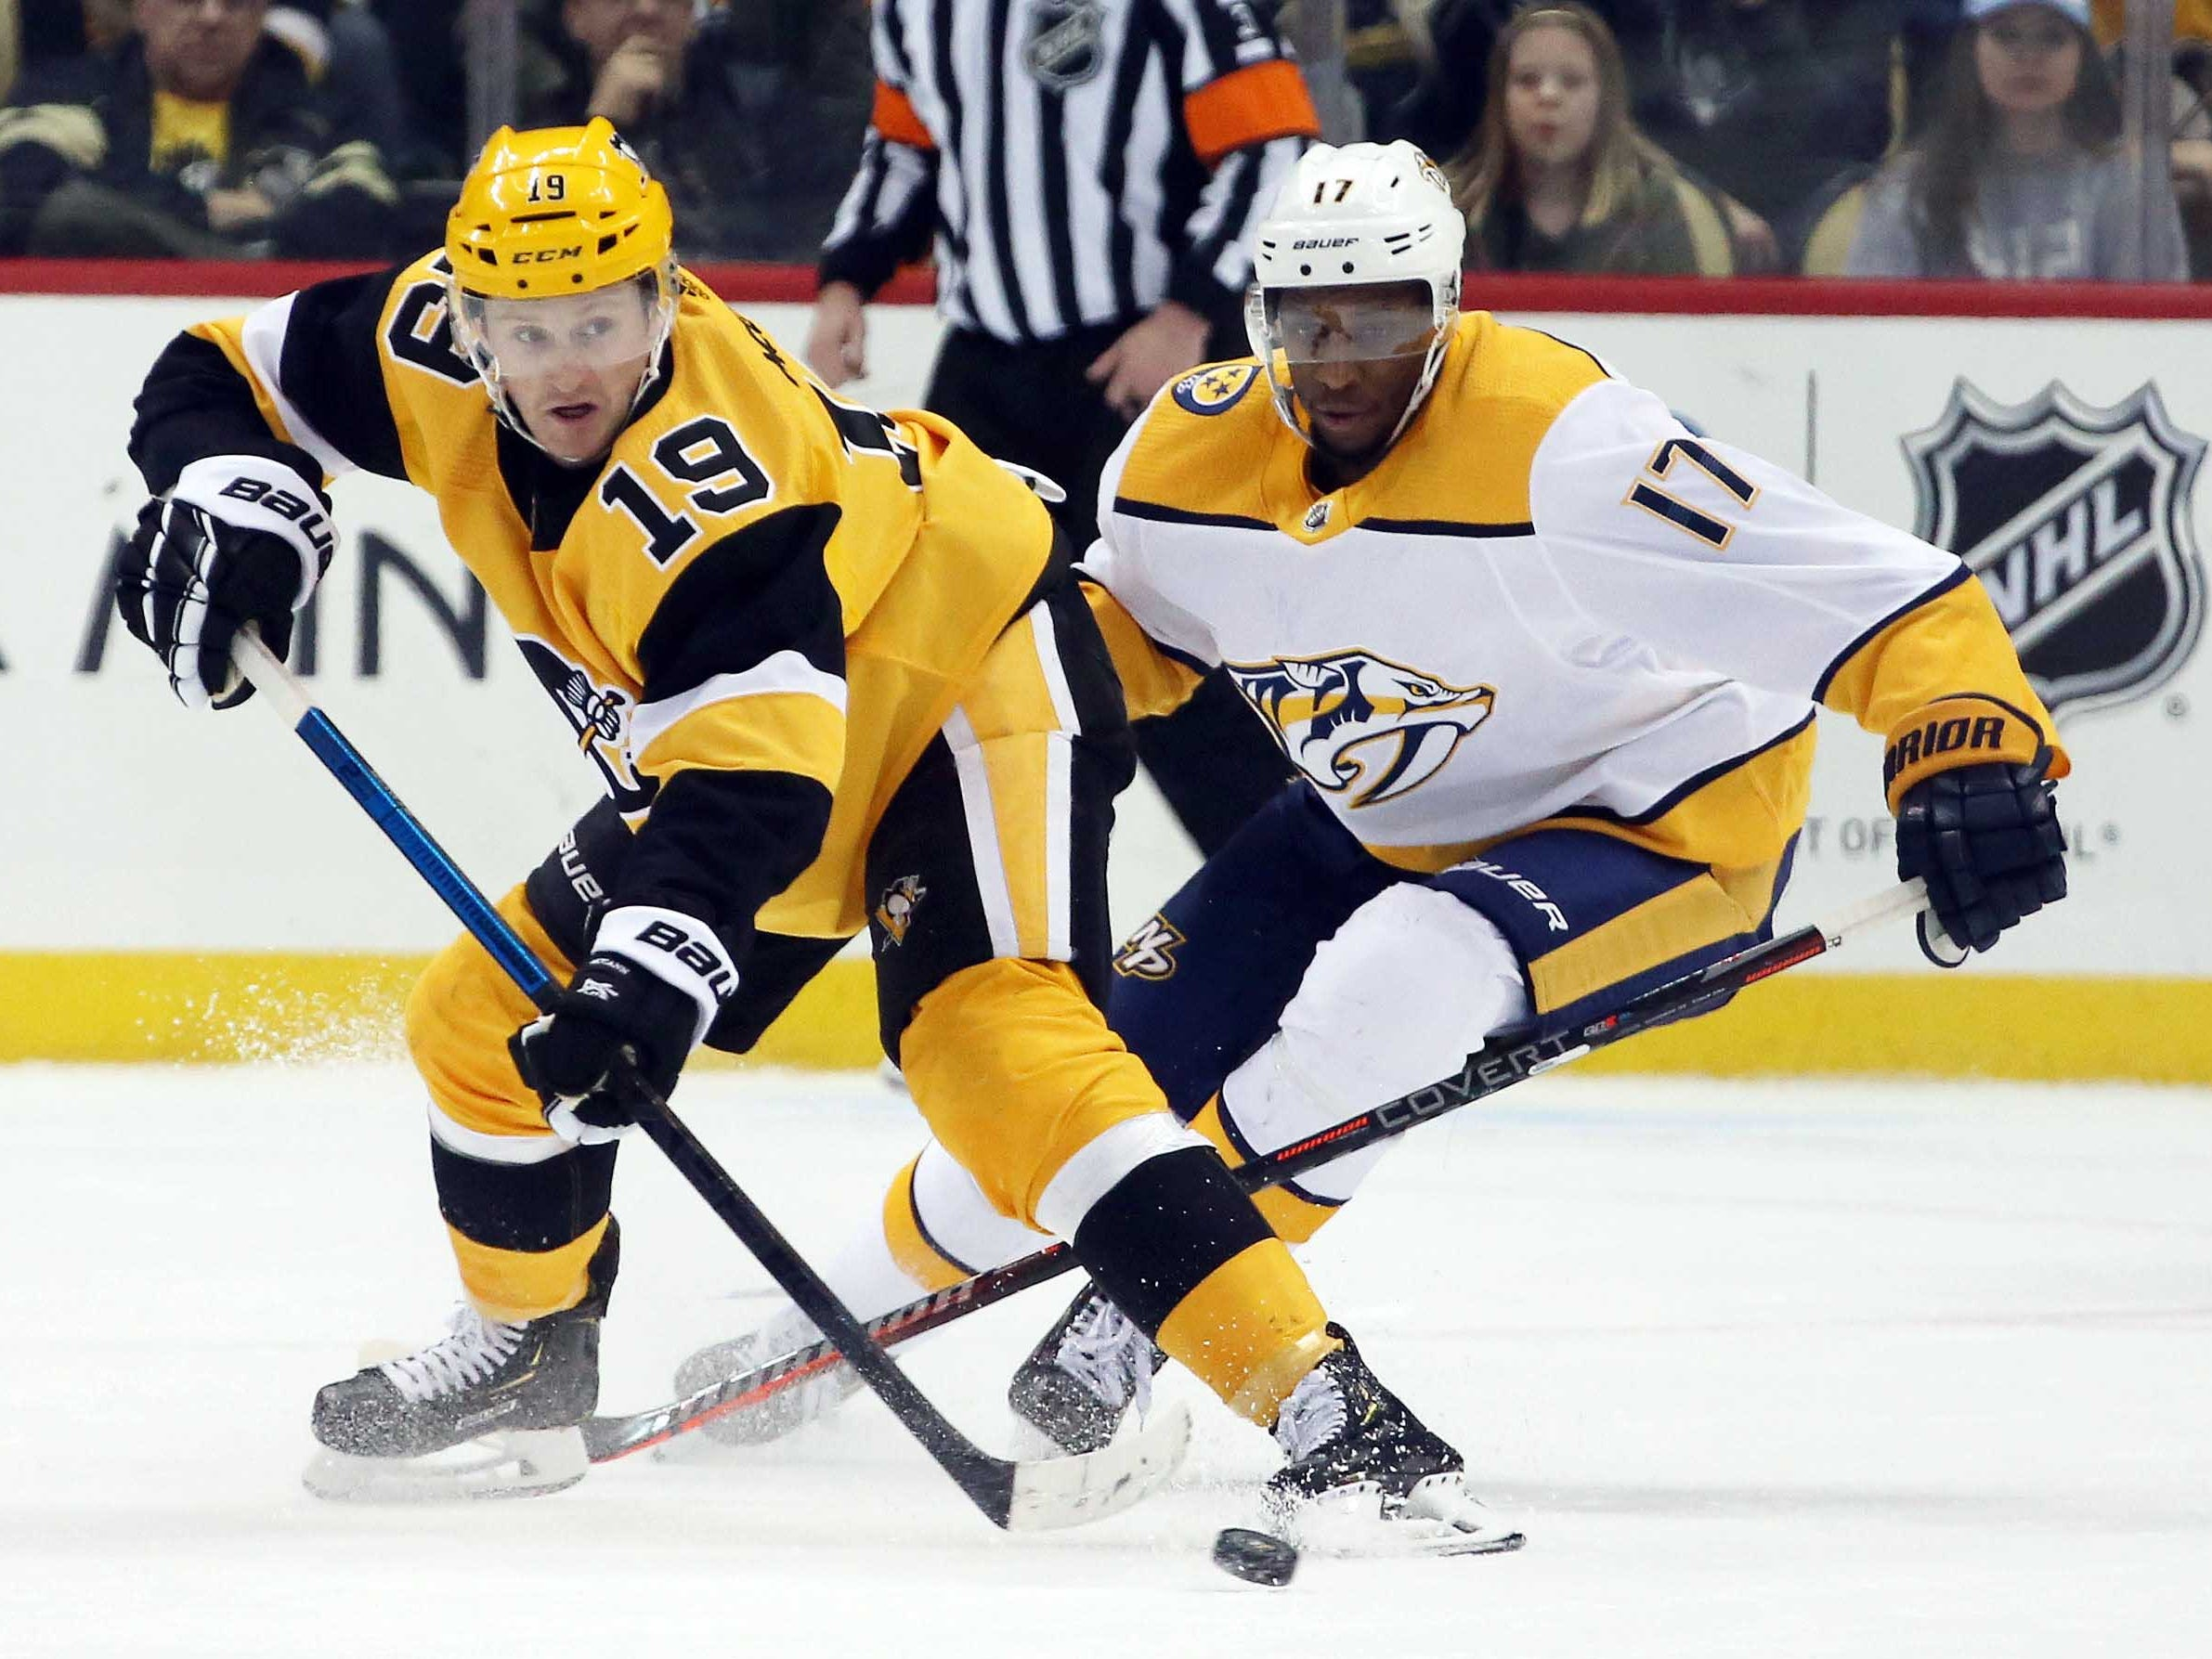 Mar 29, 2019: Predators 3, Penguins 1 -- Pittsburgh Penguins center Jared McCann (19) moves the puck against Nashville Predators right wing Wayne Simmonds (17) during the third period at PPG PAINTS Arena. Nashville won 3-1.